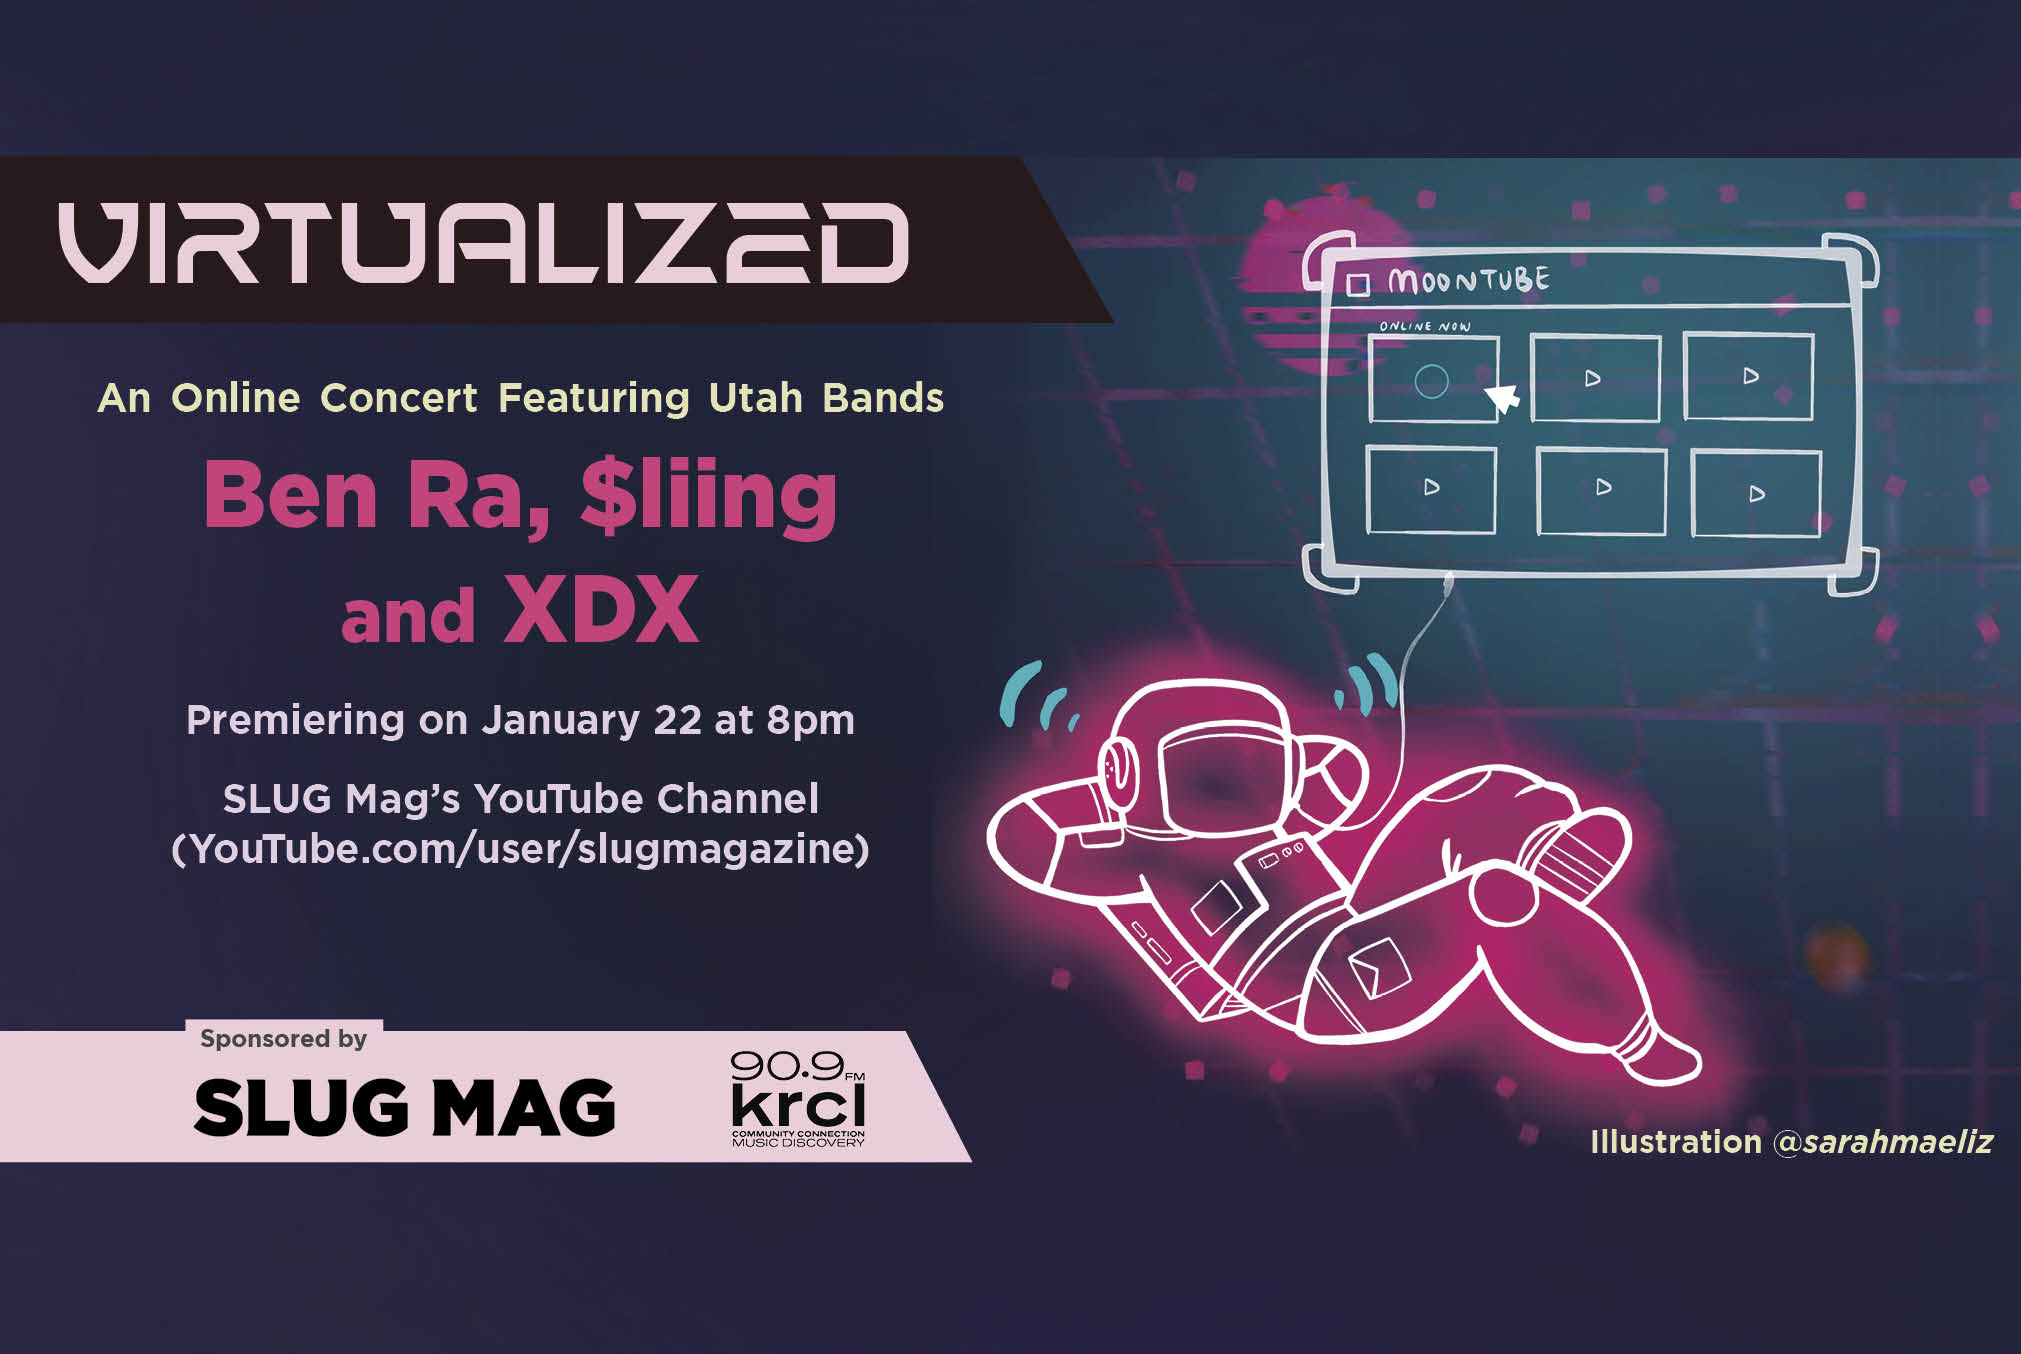 SLUG Mag is stoked to continue their Virtualized concert series with local hip-hop artists Ben Ra, $liing and XDX!